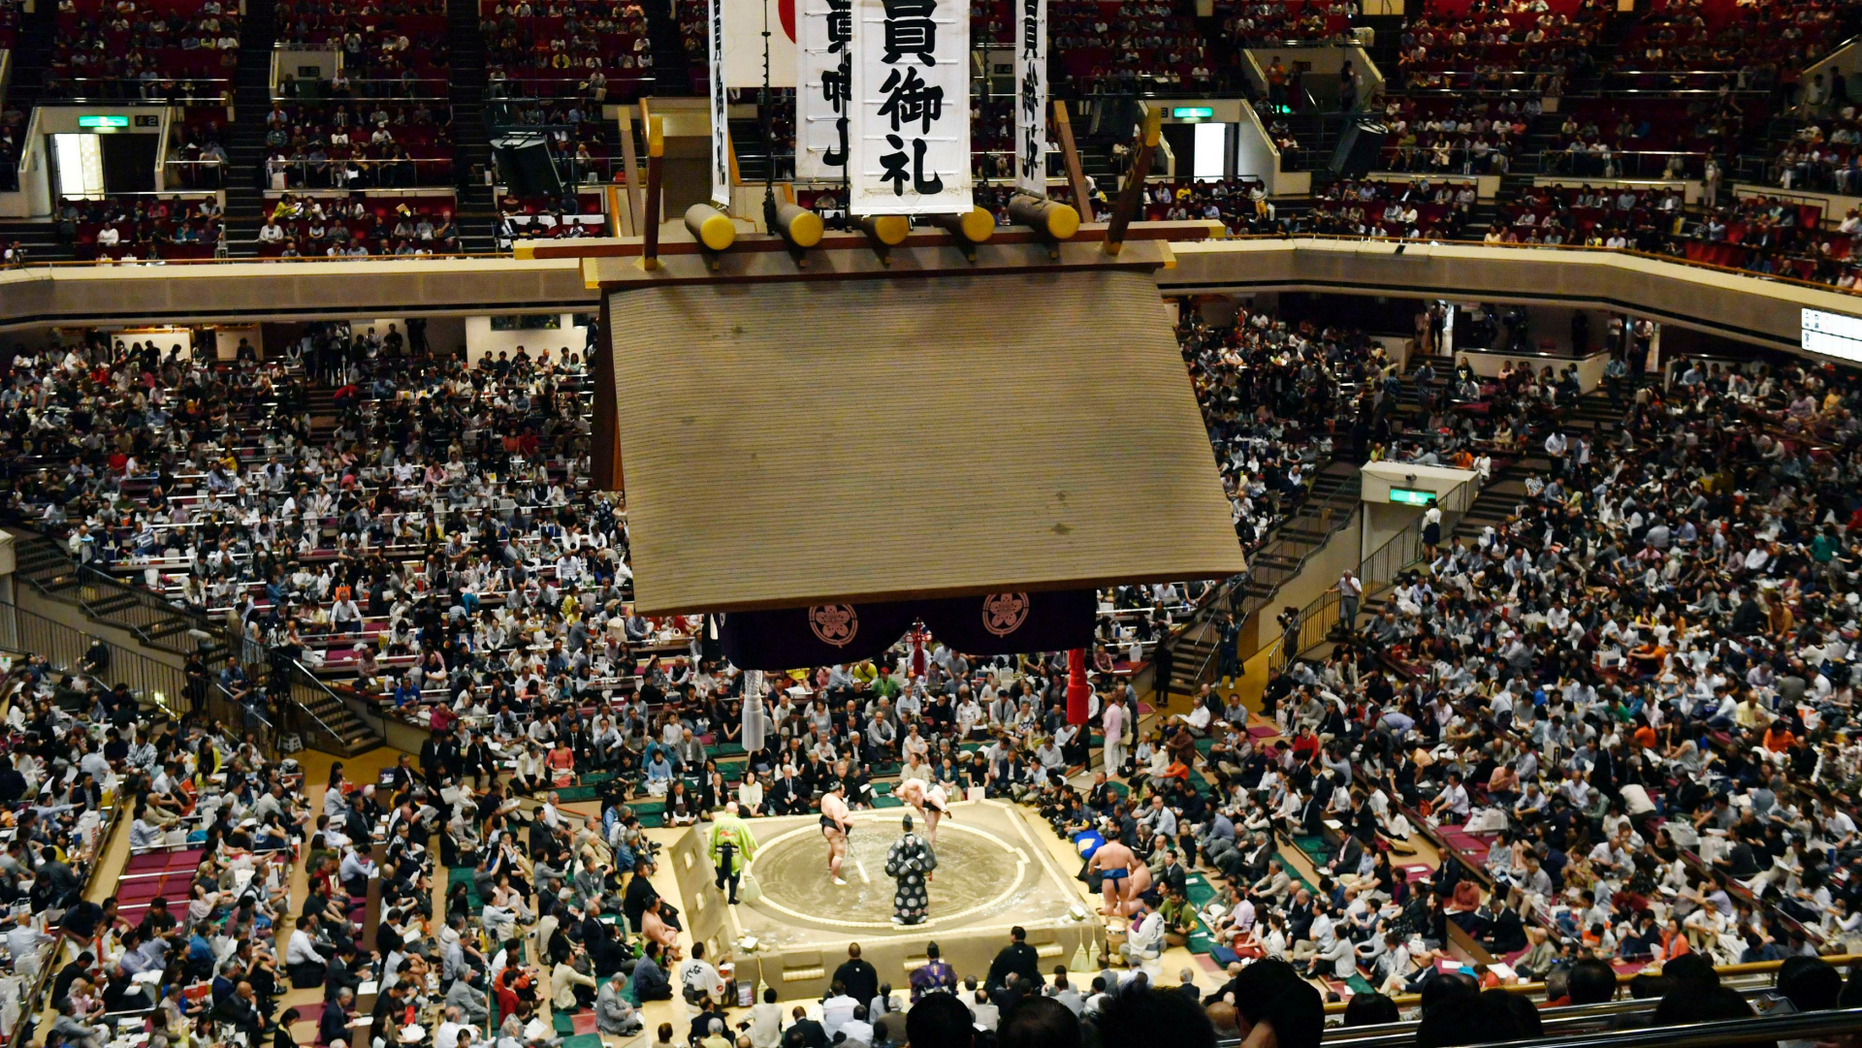 In this May 12, 2019, photo, banners thanking for a sellout crowd are displayed on the first day of Summer Grand Sumo Tournament in Tokyo. Plans for U.S. President Donald Trump to check out the ancient Japanese sport of sumo wrestling during a state visit are raising security issues for organizers. (Yoshitaka Sugawara/Kyodo News via AP)